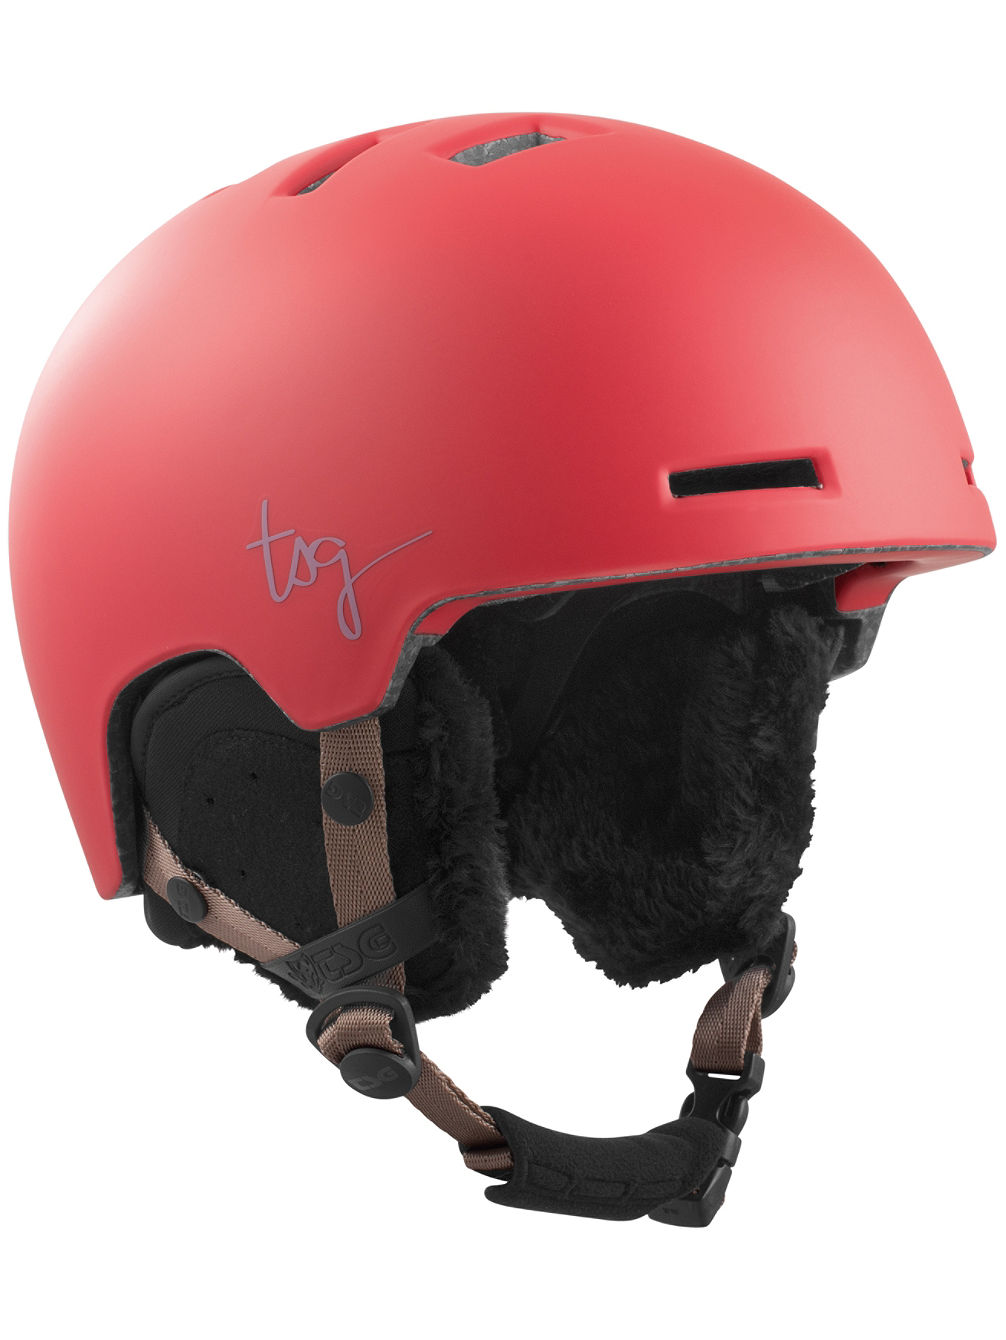 Cosma Solid Color Helm